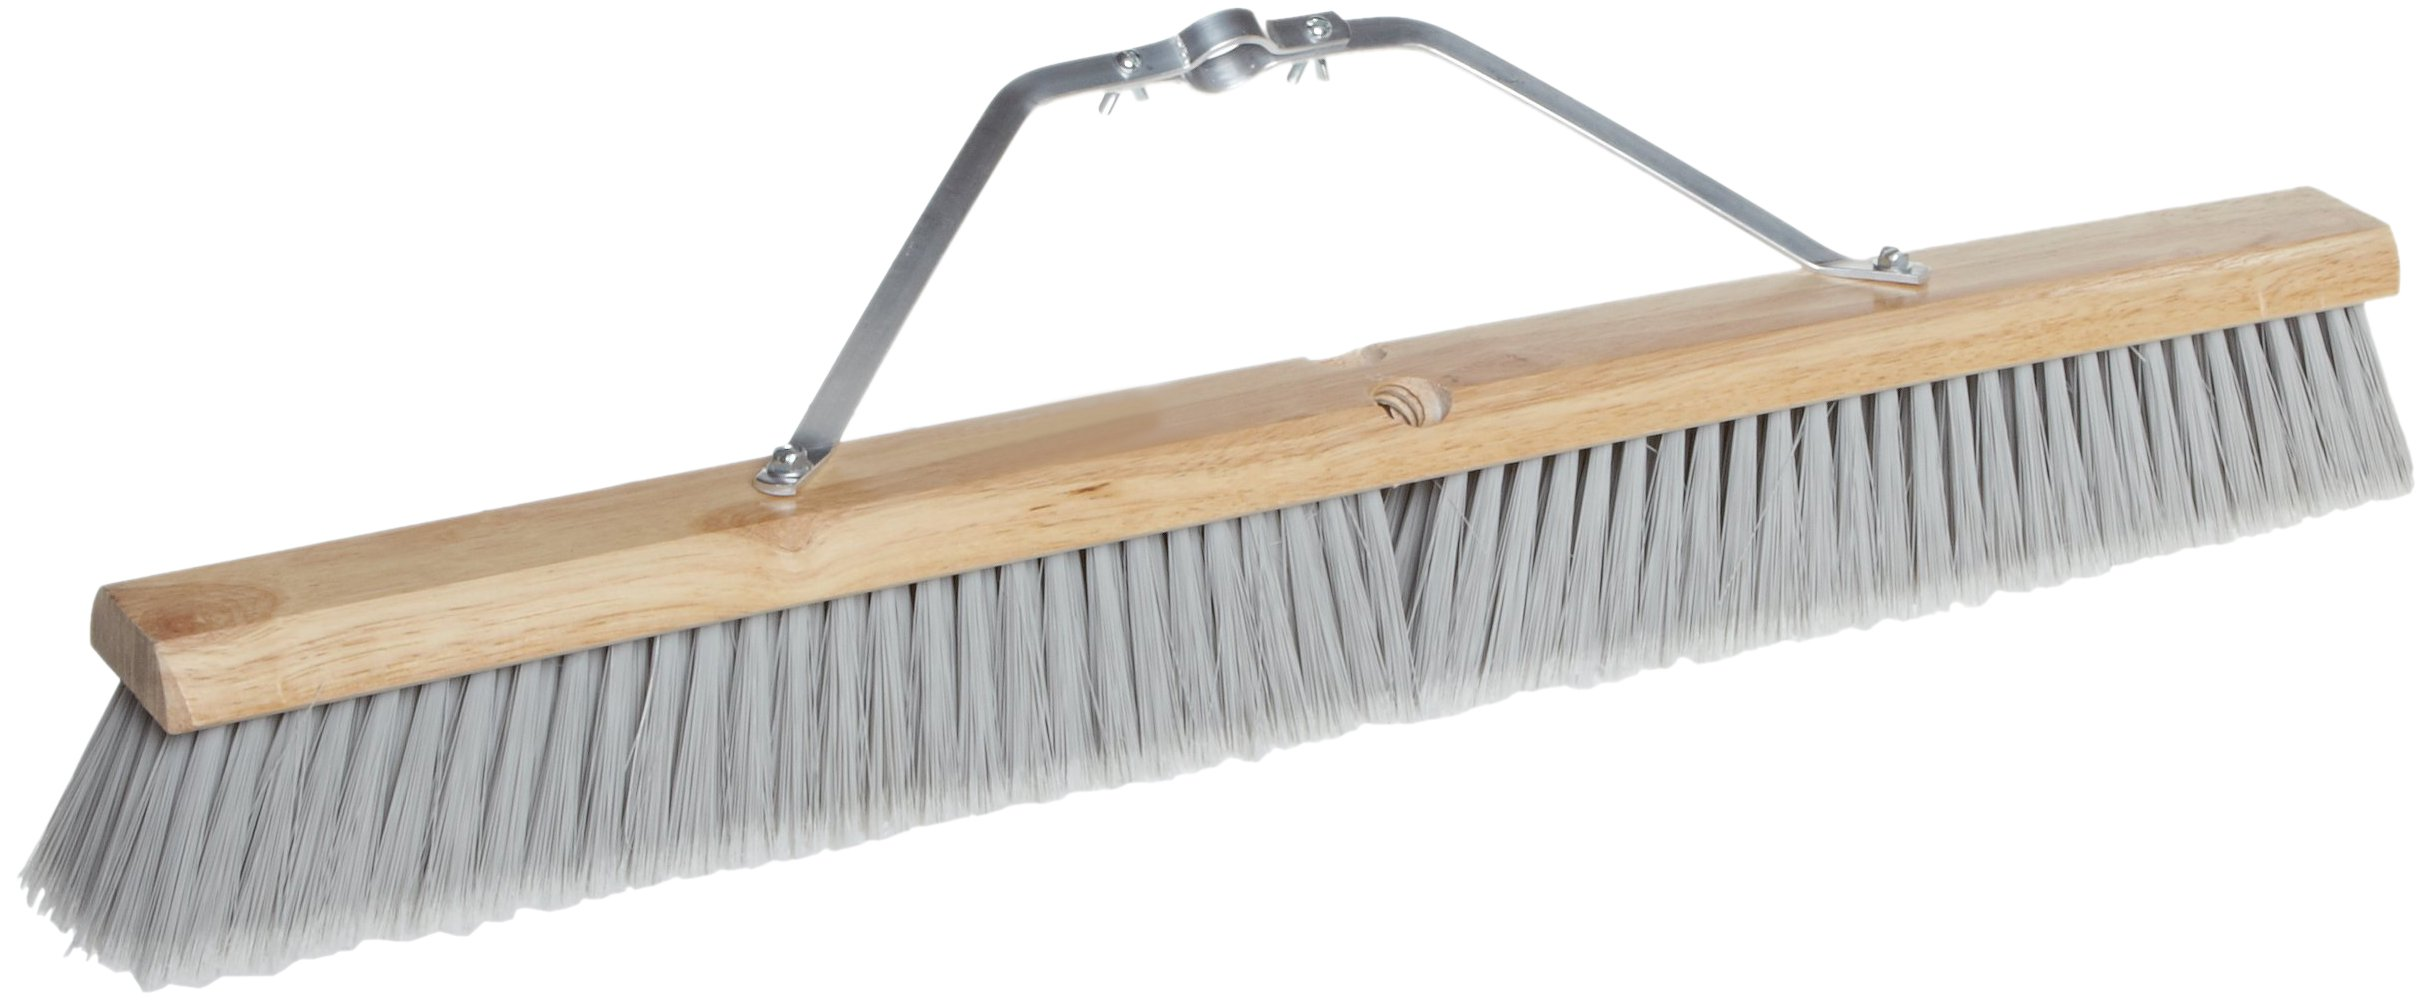 Magnolia Brush 3730 LH Line Floor Brush, Flagged-Tip Plastic Bristles, 3'' Trim, 30'' Length, Silver (Case of 6)